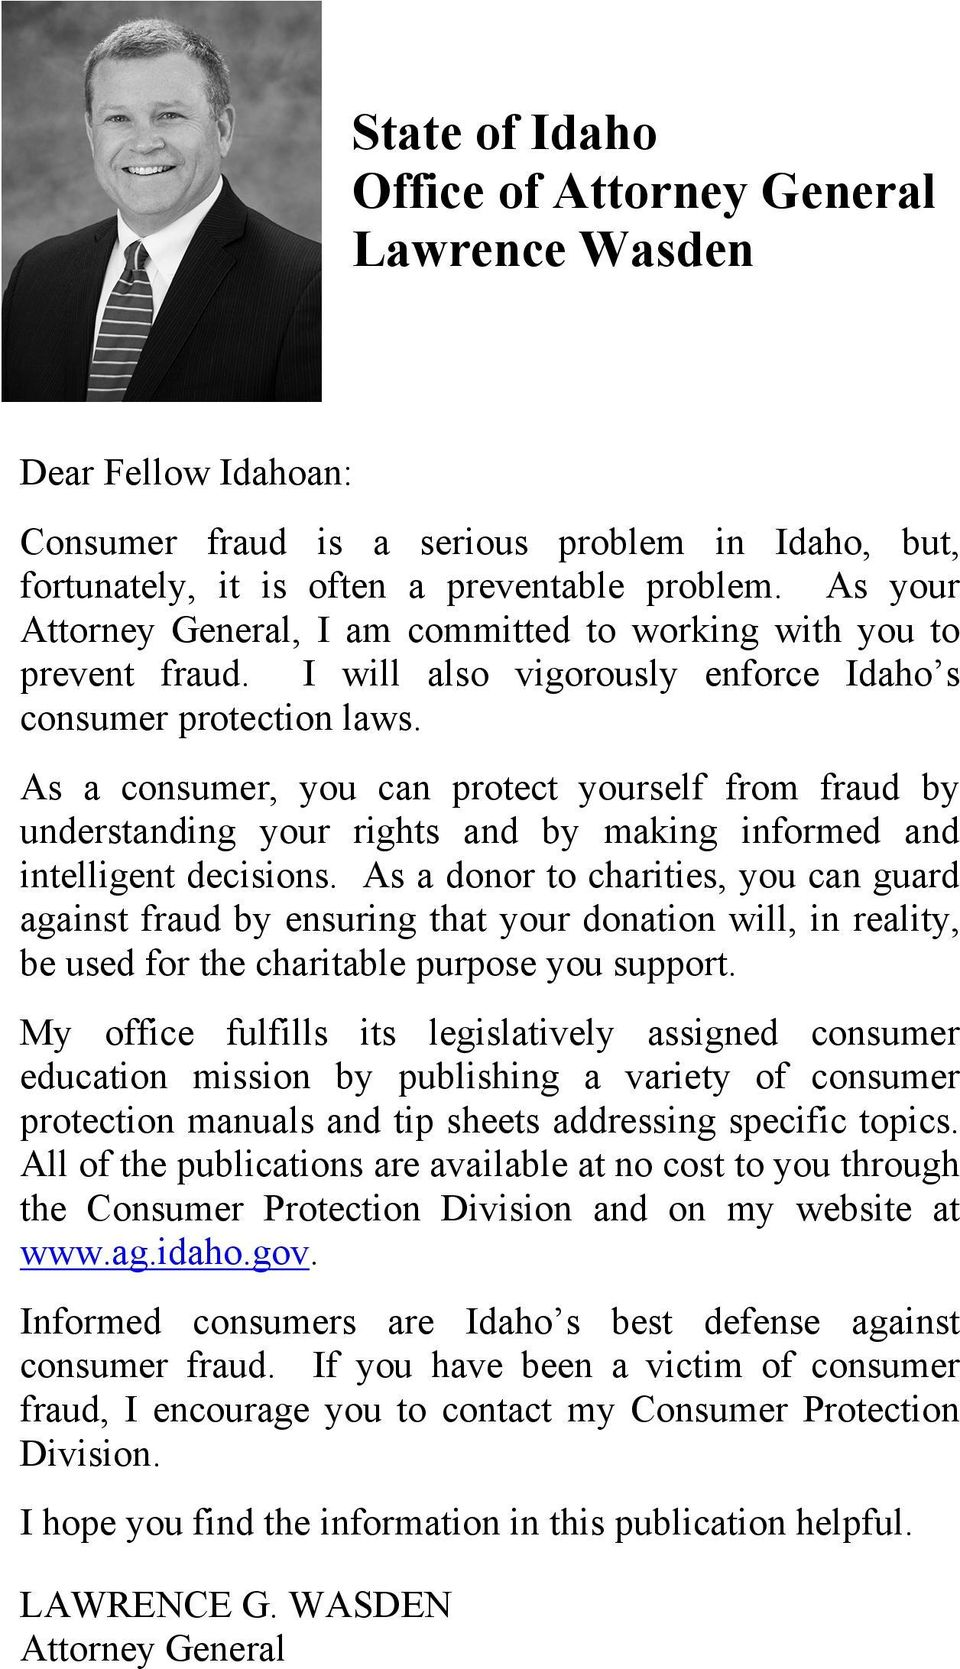 As a consumer, you can protect yourself from fraud by understanding your rights and by making informed and intelligent decisions.